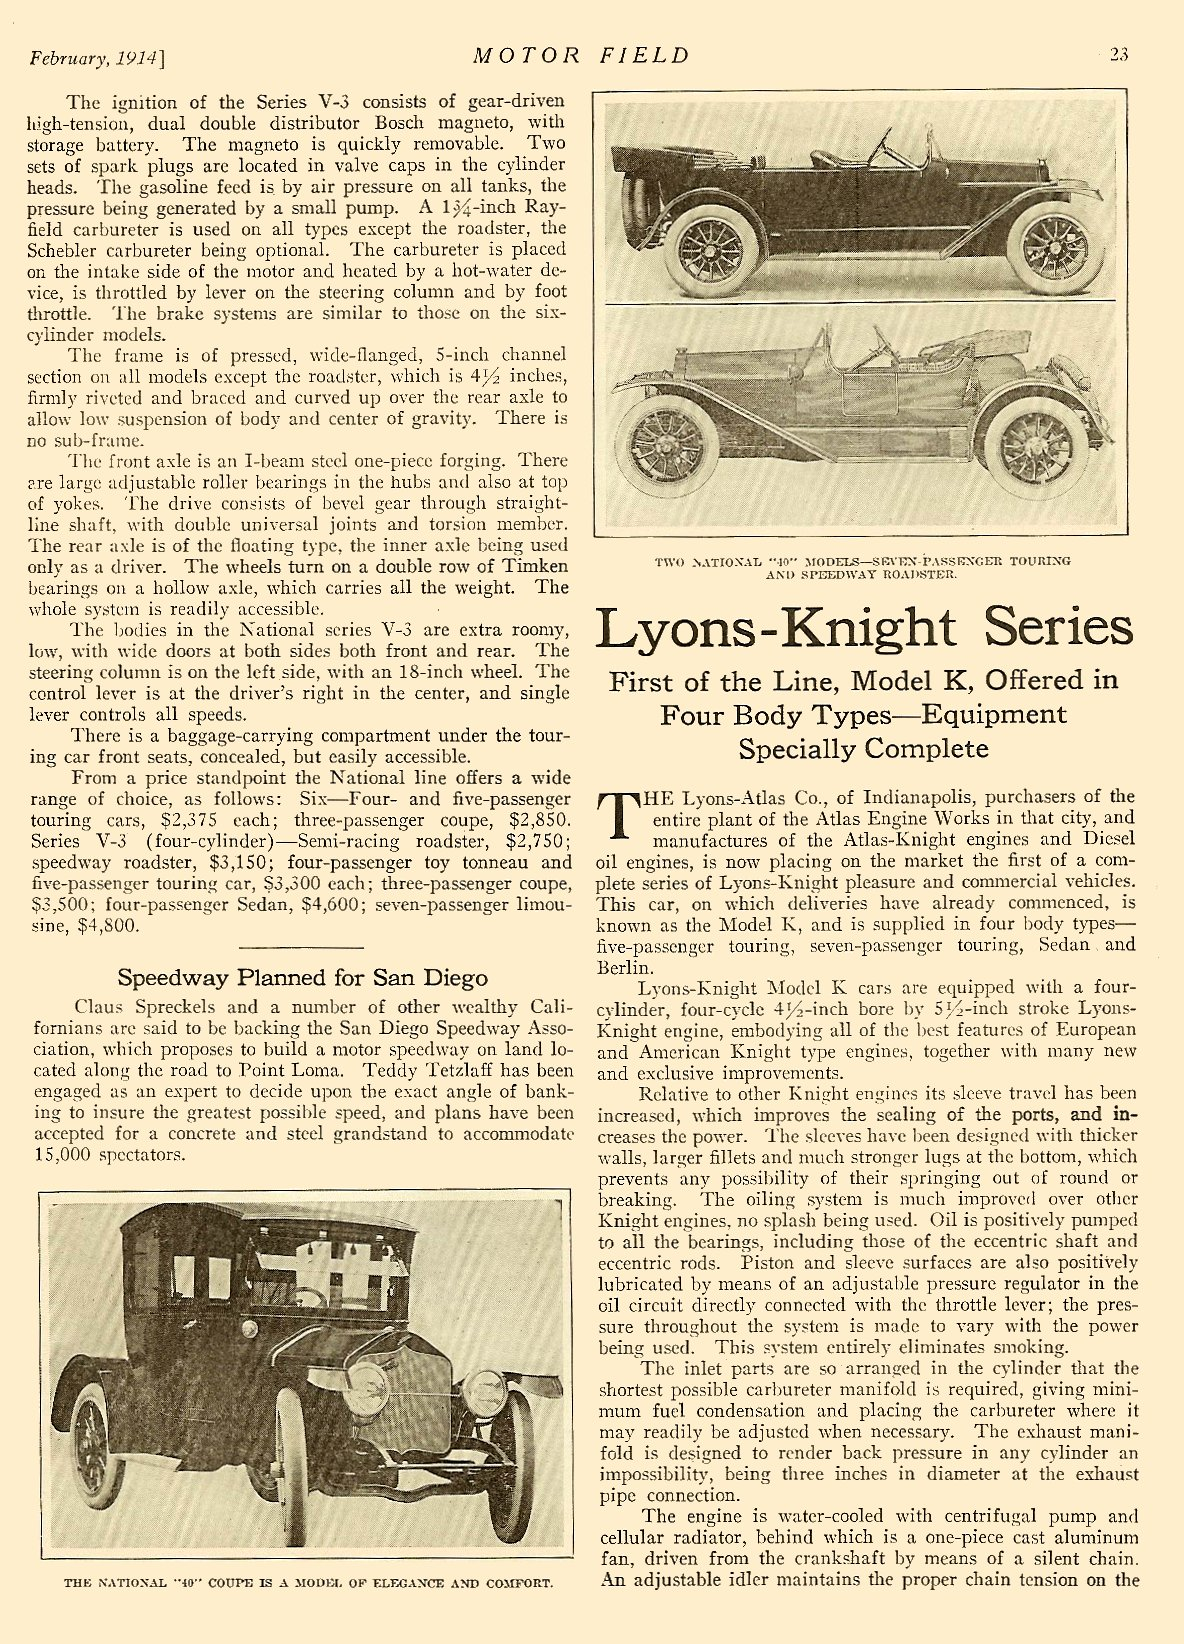 """1914 2 NATIONAL """"National Adopts Six"""" article """"Four-Cylinder Line Enlarged and Improved – Eleven Models Offered In the Two Types"""" MOTOR FIELD Vol. 28 No. 5 February 1914 9″x12″ page 23"""